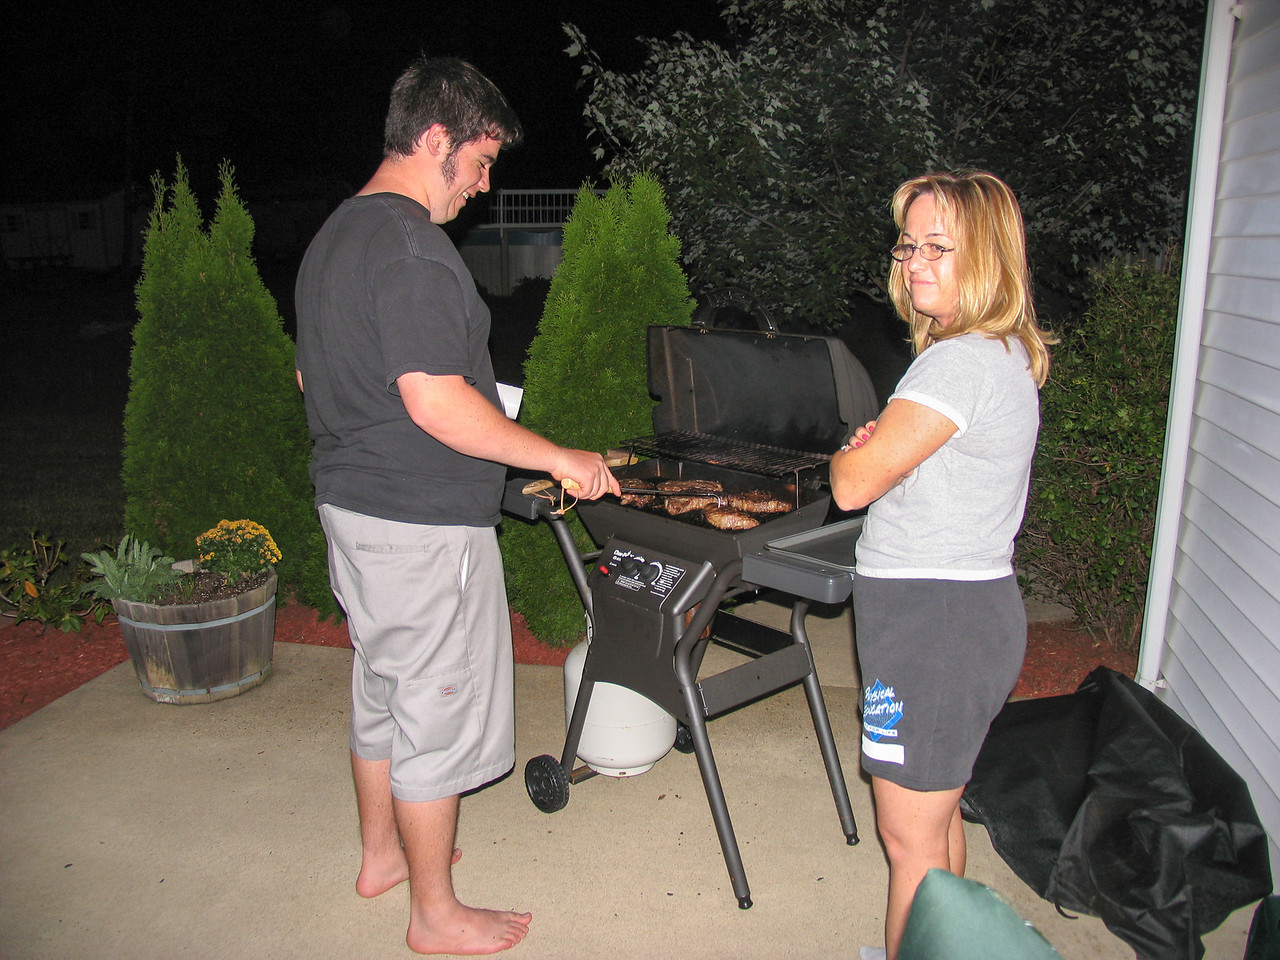 Jason grilling up some steaks - August 2005